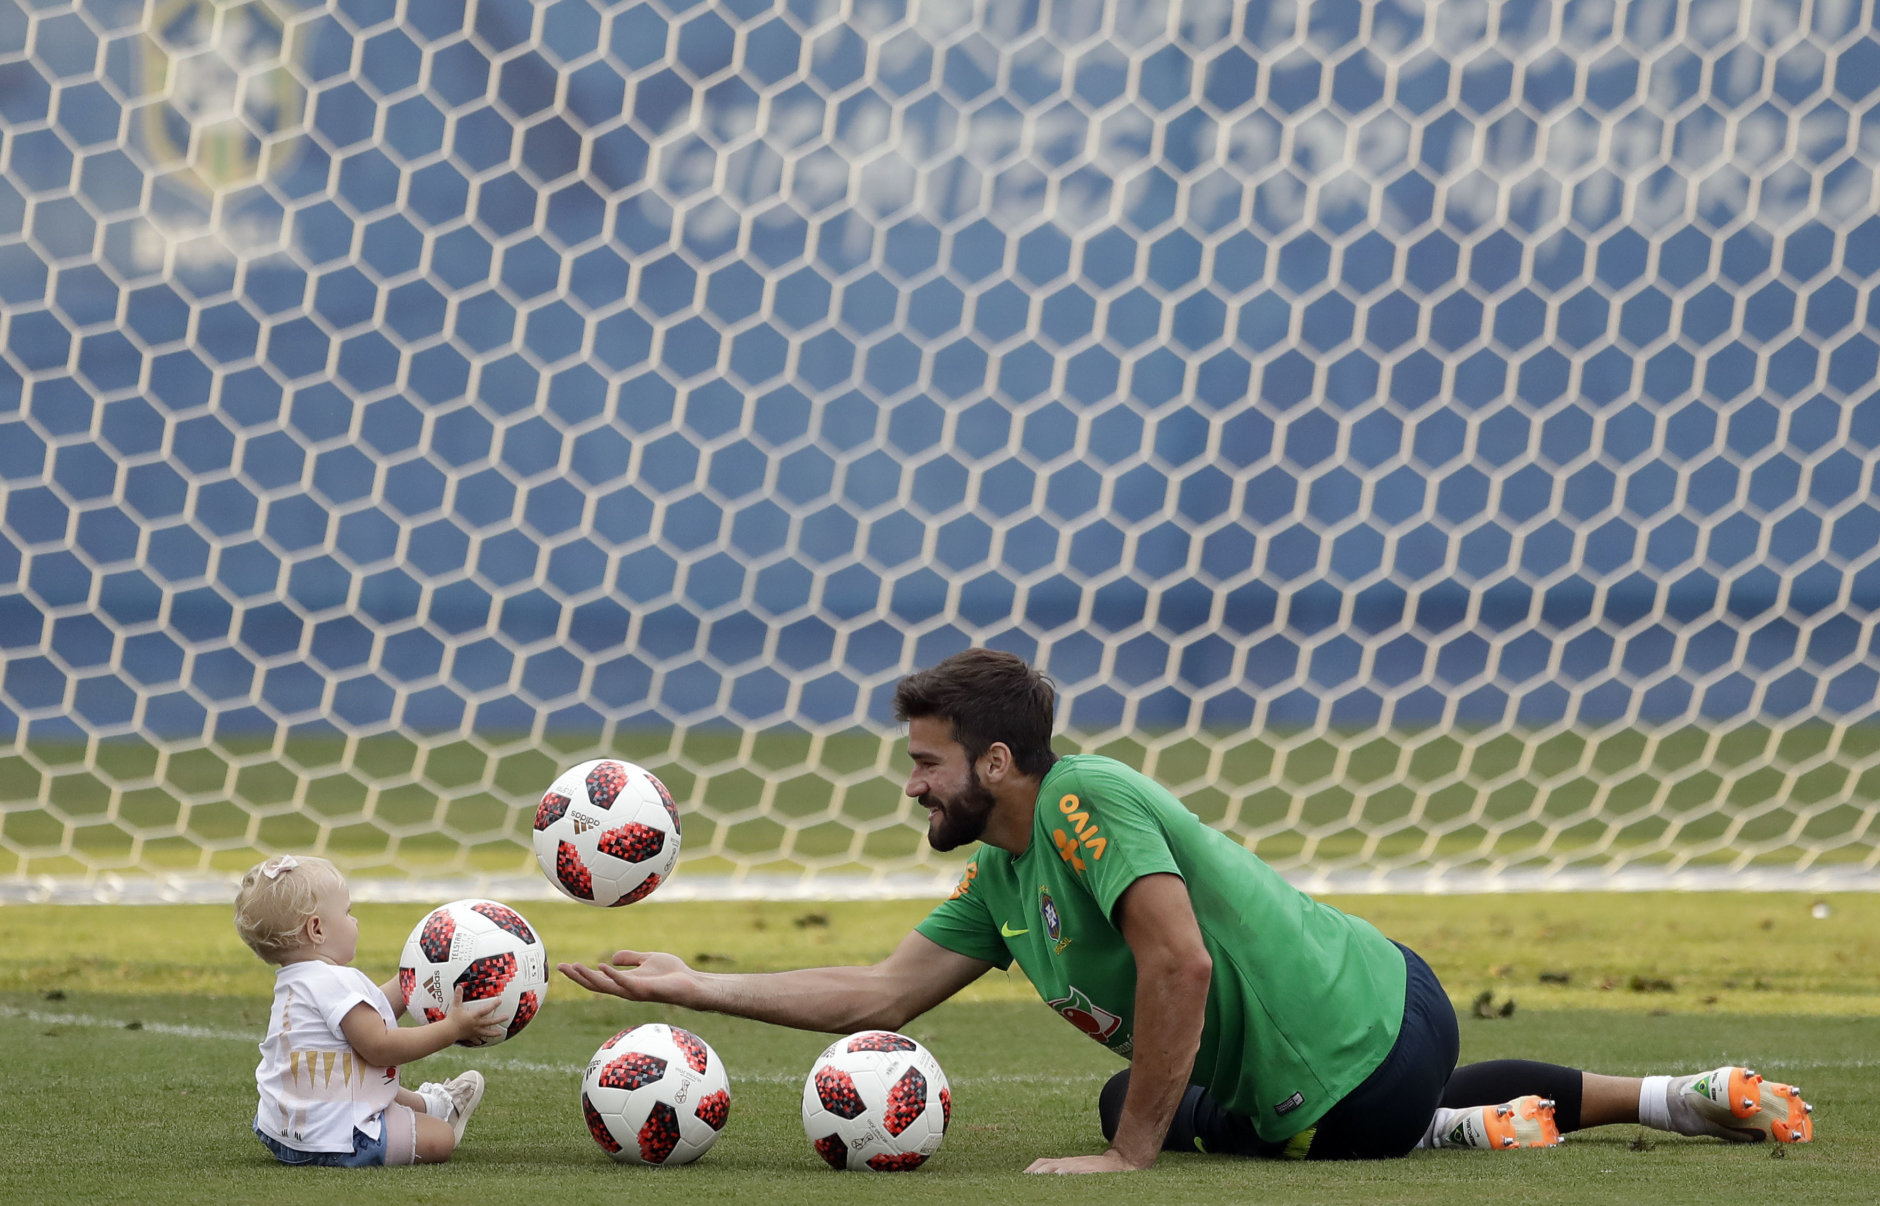 Brazil goalkeeper Alisson plays with his daughter Helena during a training session, in Sochi, Russia, Tuesday, July 3, 2018. Brazil will face Belgium on July 6 in the quarterfinals for the soccer World Cup. (AP Photo/Andre Penner)